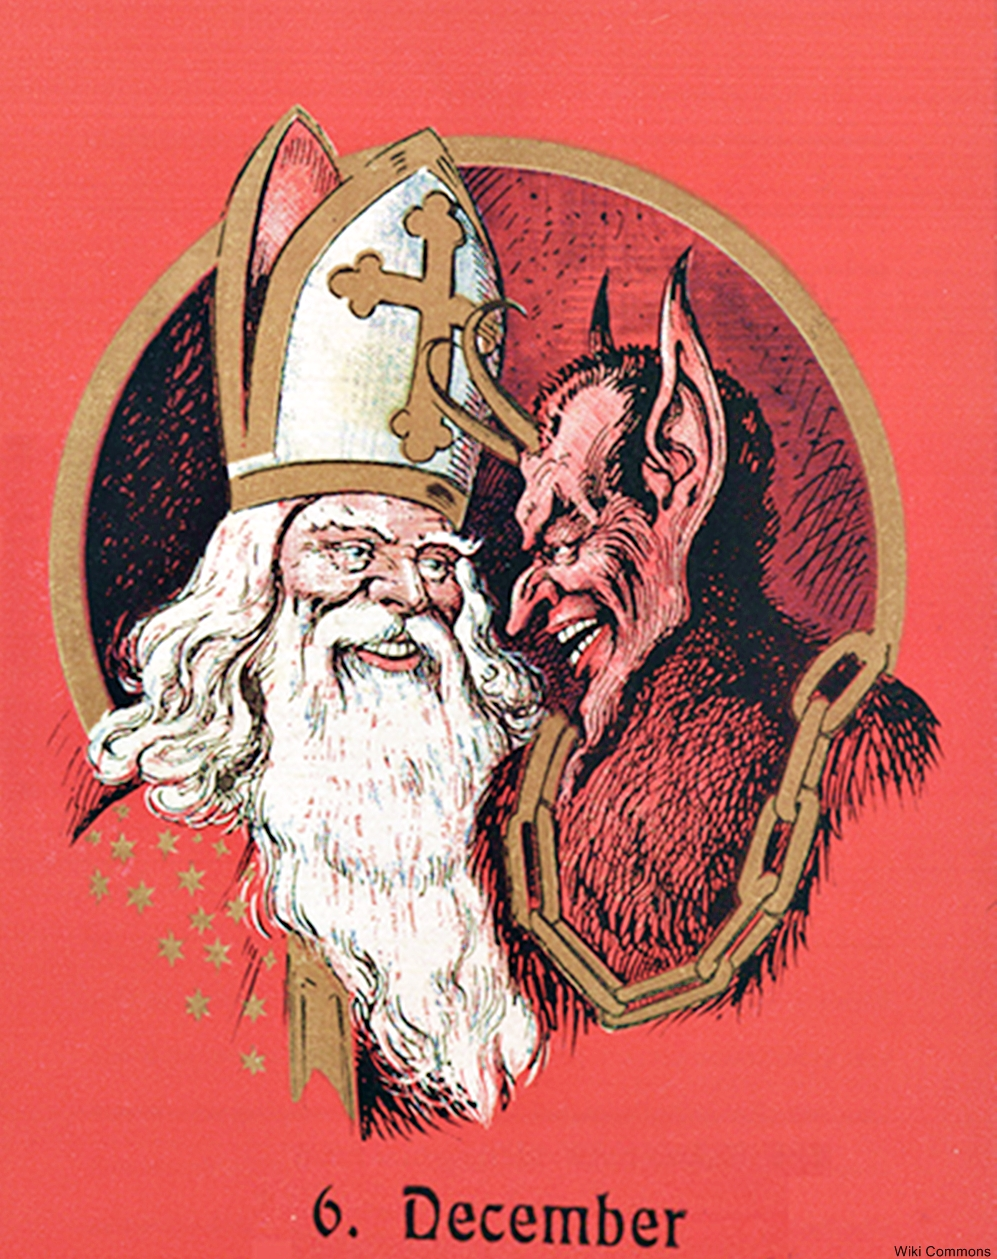 Santa and Krampus are still closely associated in some European countries